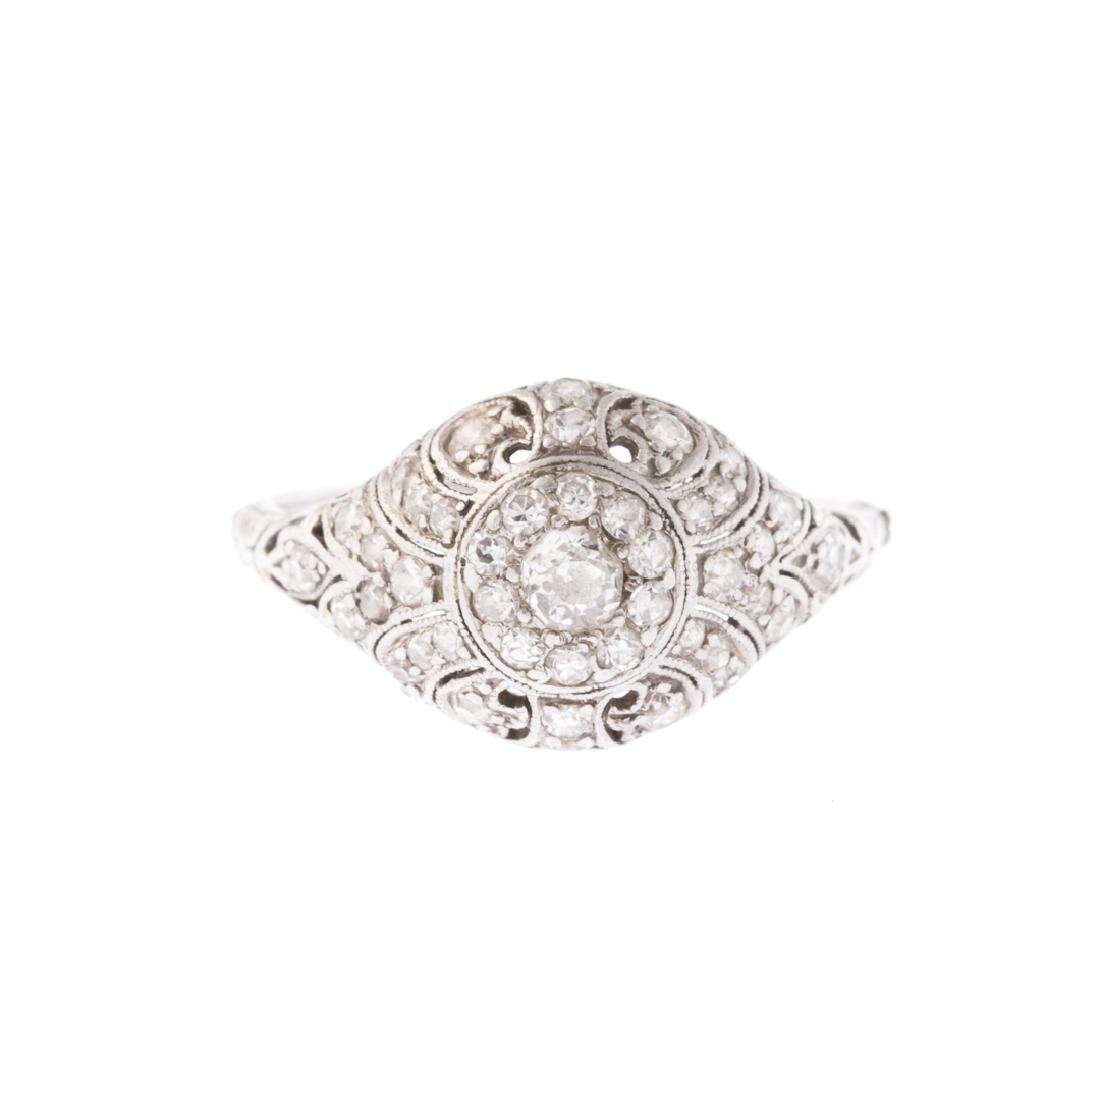 A Lady's Platinum Diamond Filigree Ring